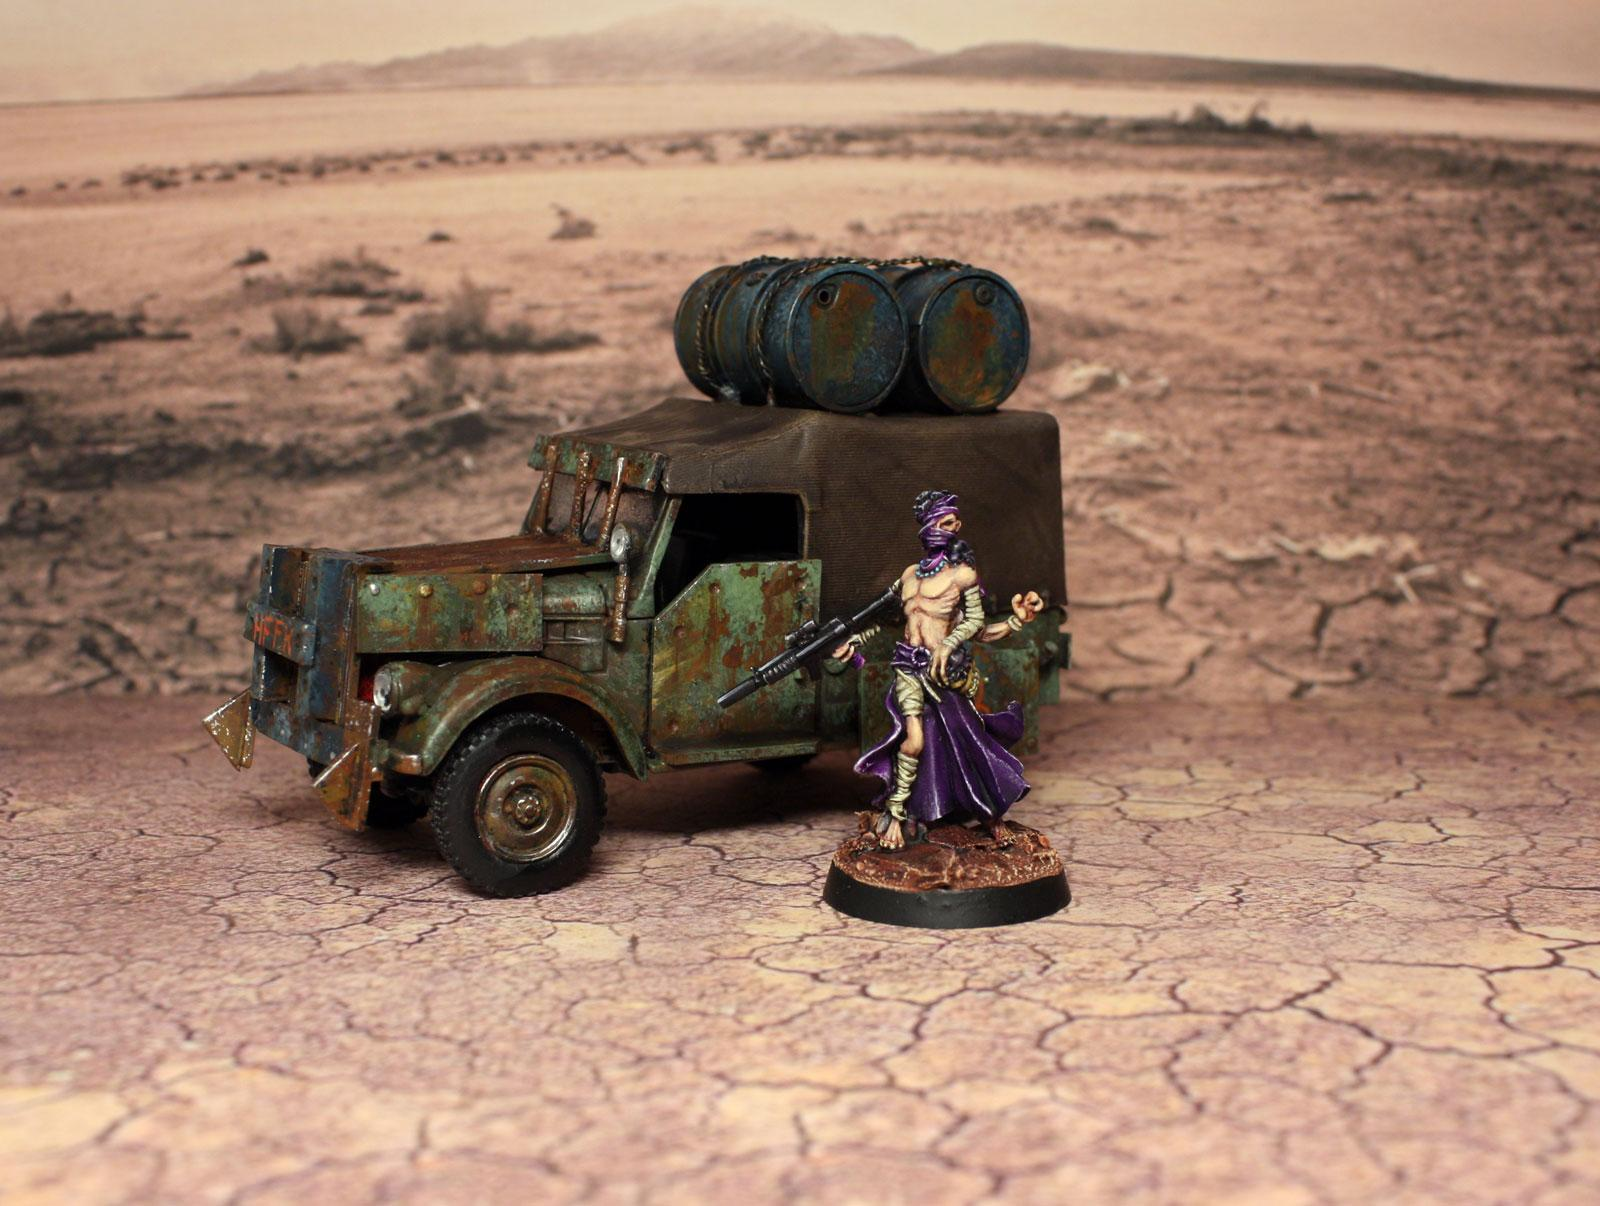 Apocalyptic, Button, Cars, Dirt, Drone, Dust, Jeep, Nation, Post, Post Apocalyptic, Post-apo, Red, Robot, Ronin, Rust, Rusty, Turquoise, Weathered